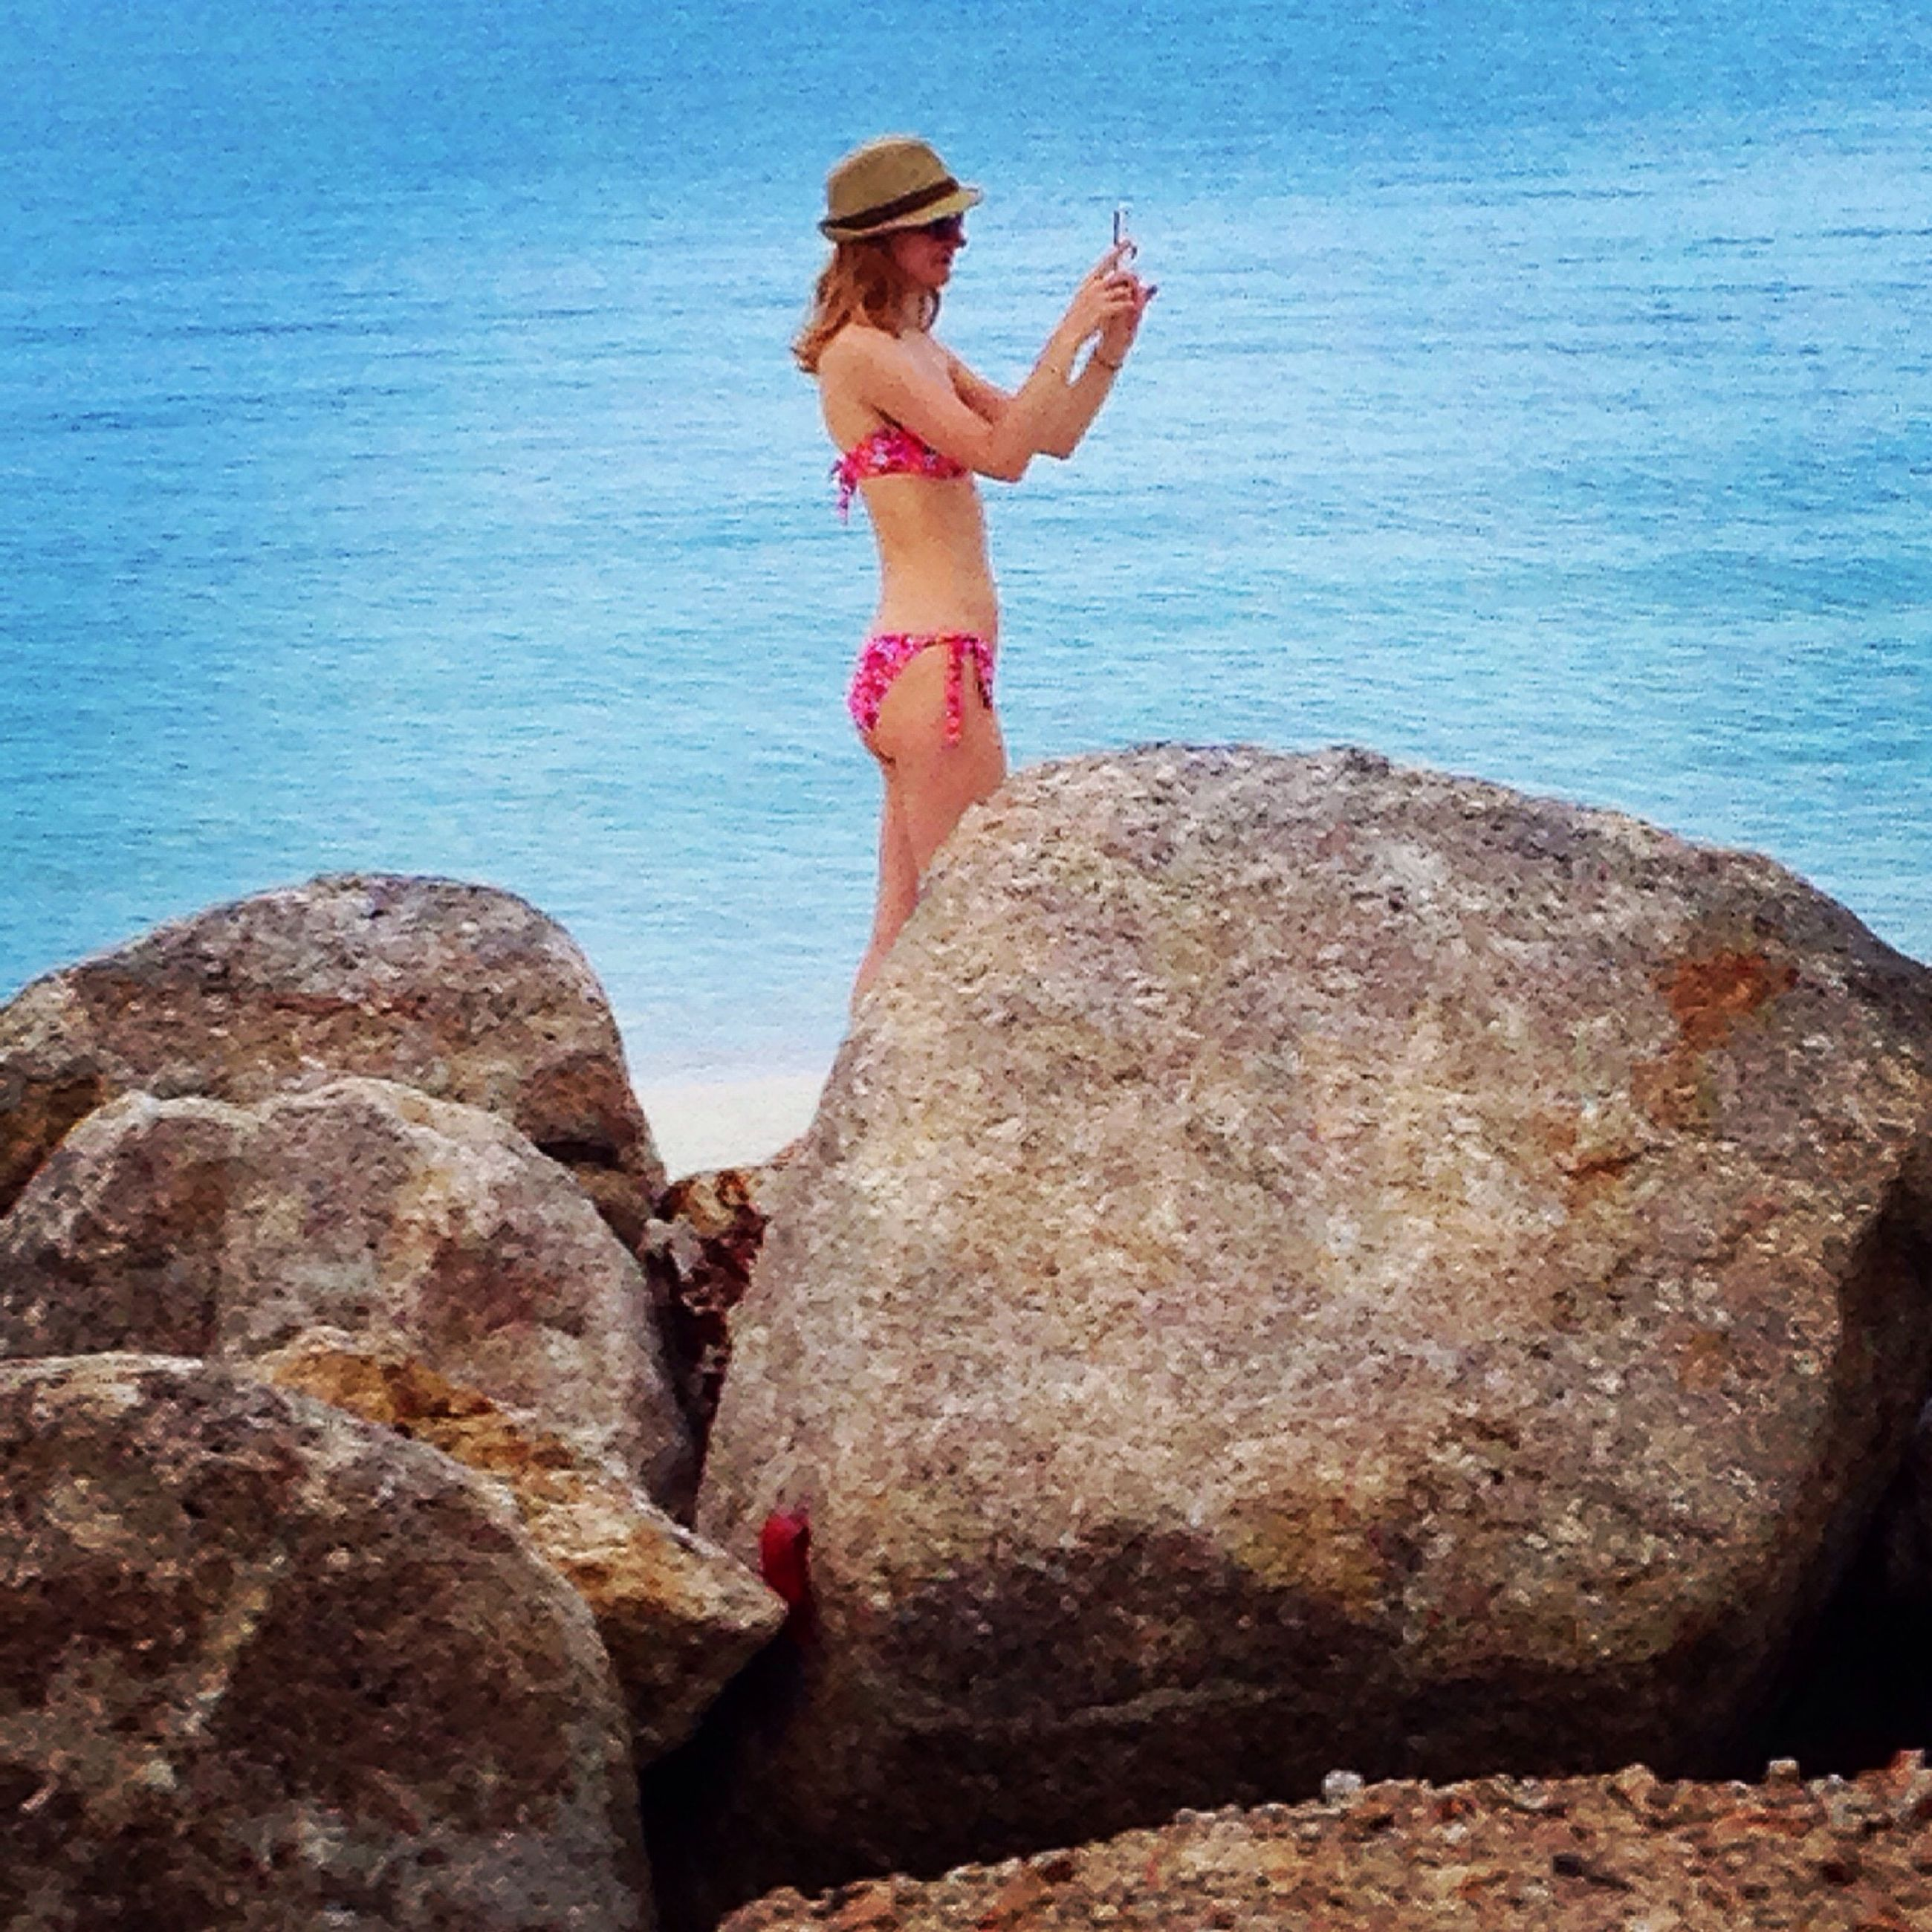 water, sea, rock - object, lifestyles, leisure activity, standing, full length, rock formation, blue, vacations, rock, person, tranquility, nature, scenics, beauty in nature, day, shore